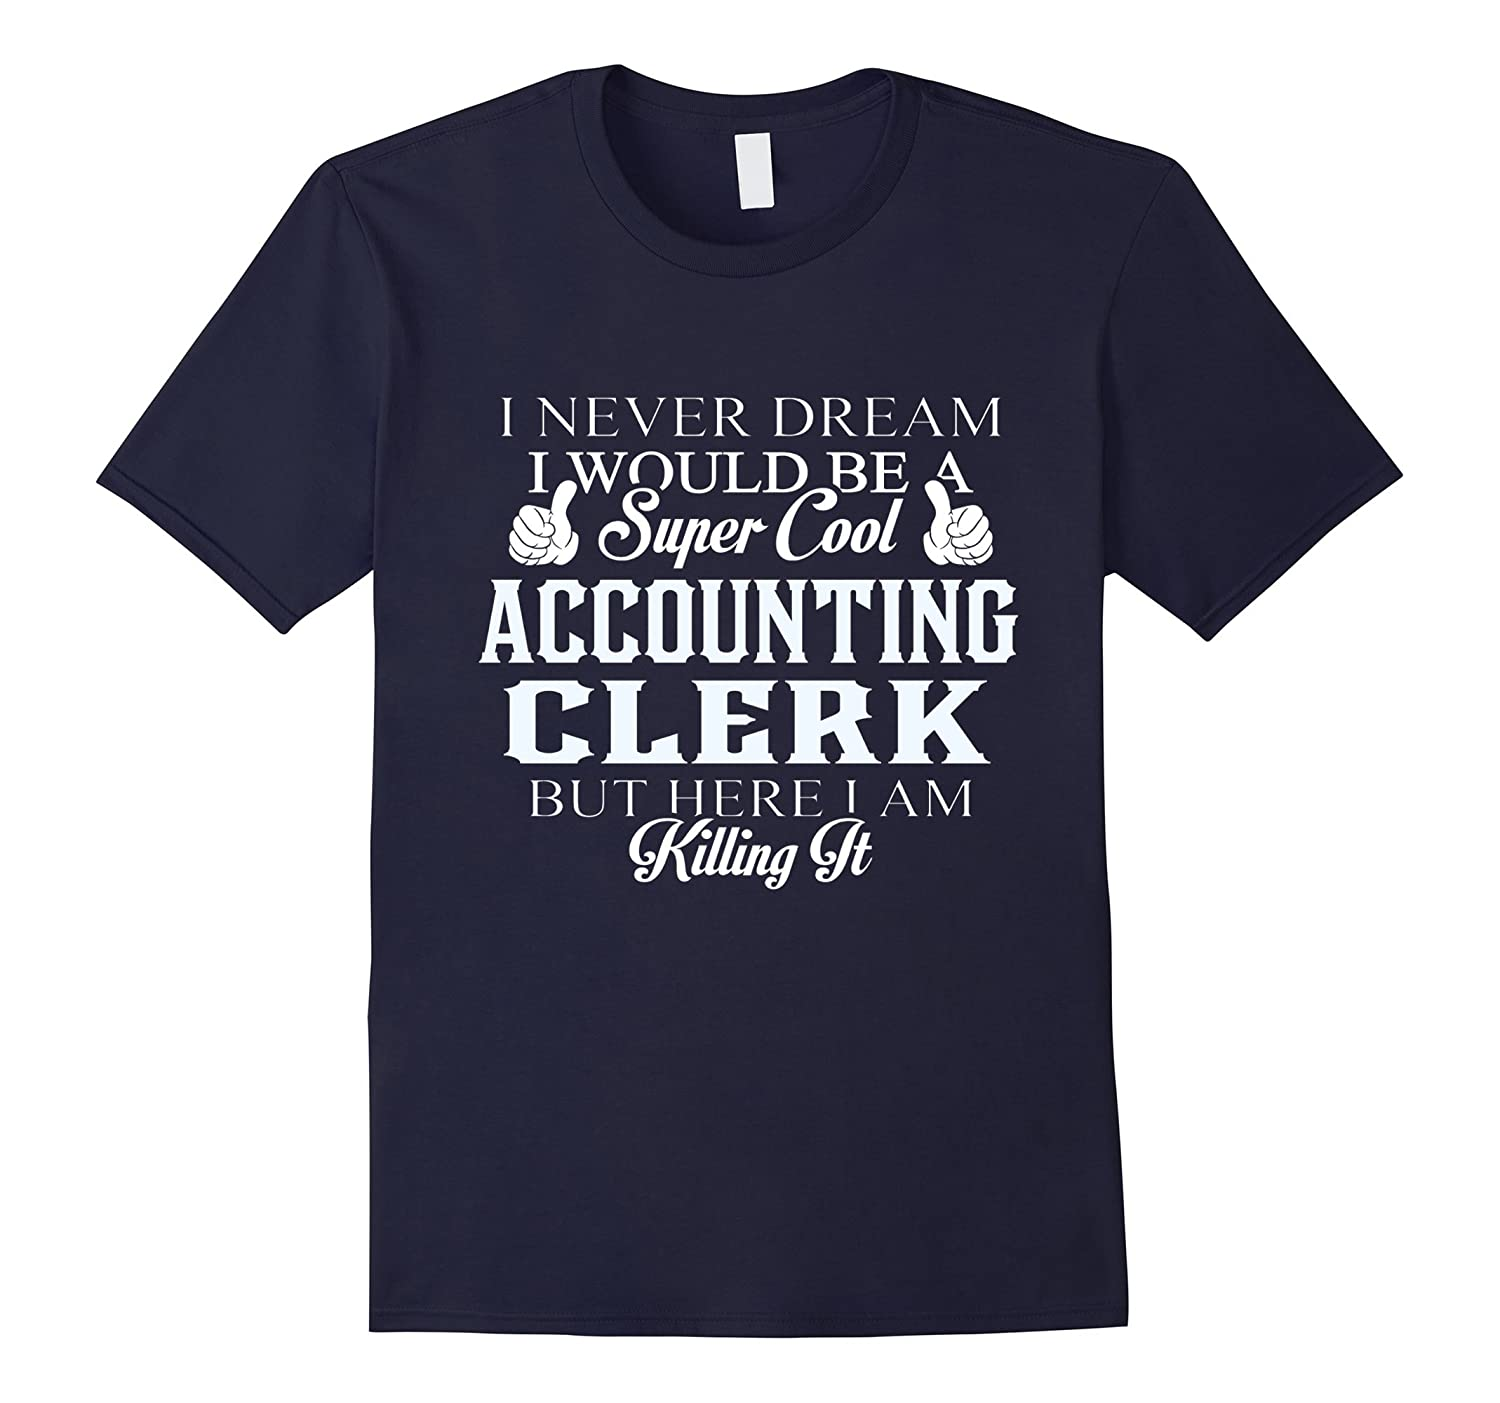 Dreamed would super cool Accounting clerk killing it-TH